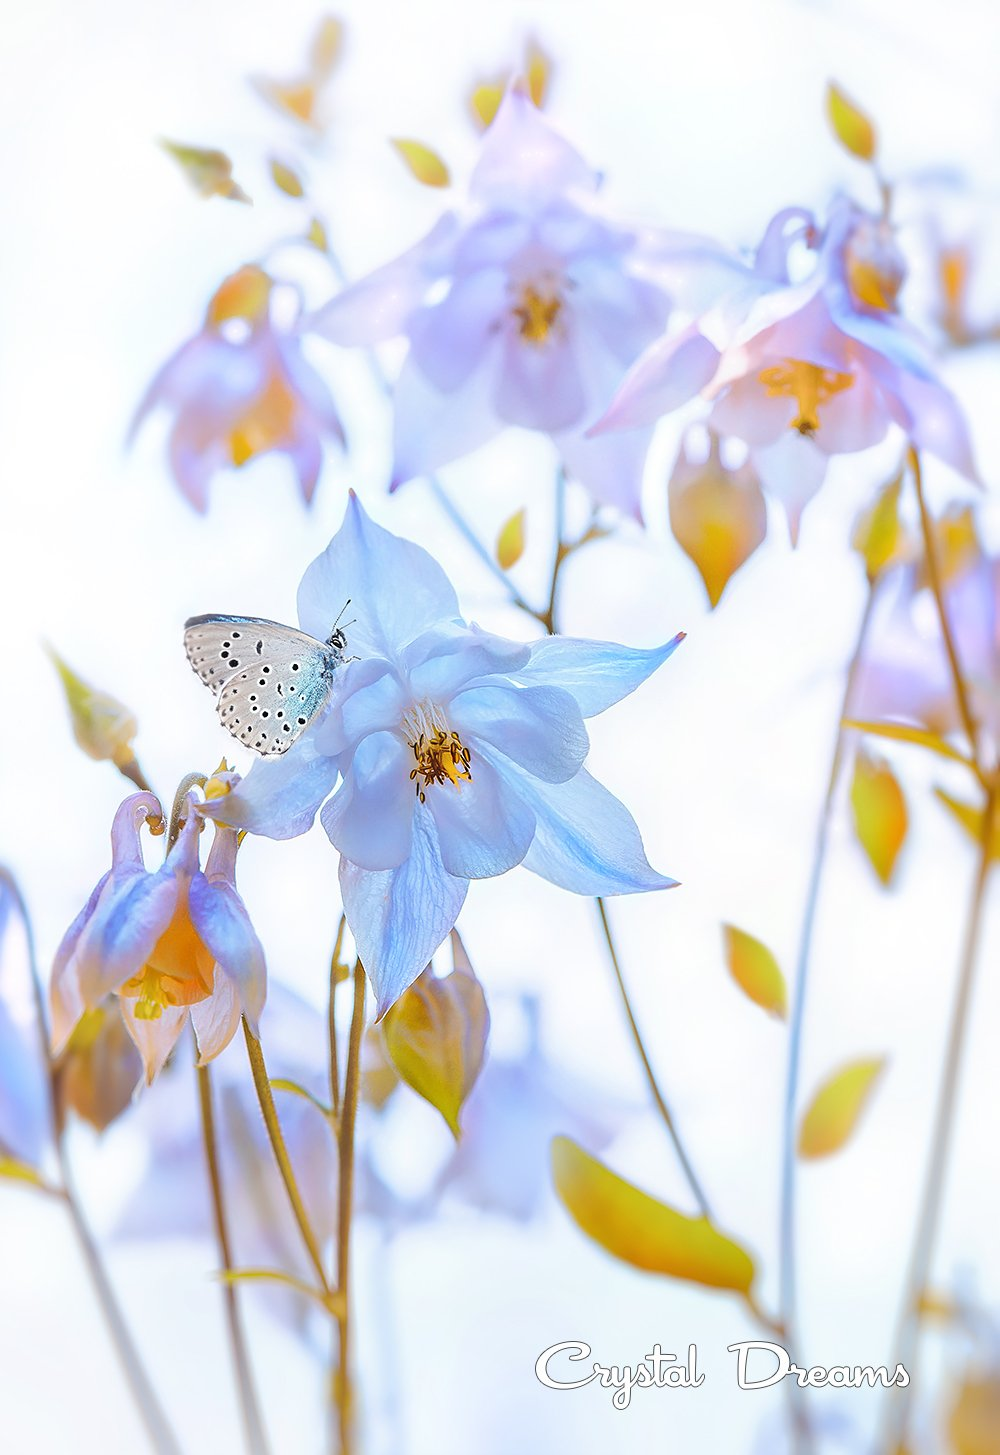 nature, crystal dreams, color, spring, butterfly, flowers, Крылова Татьяна